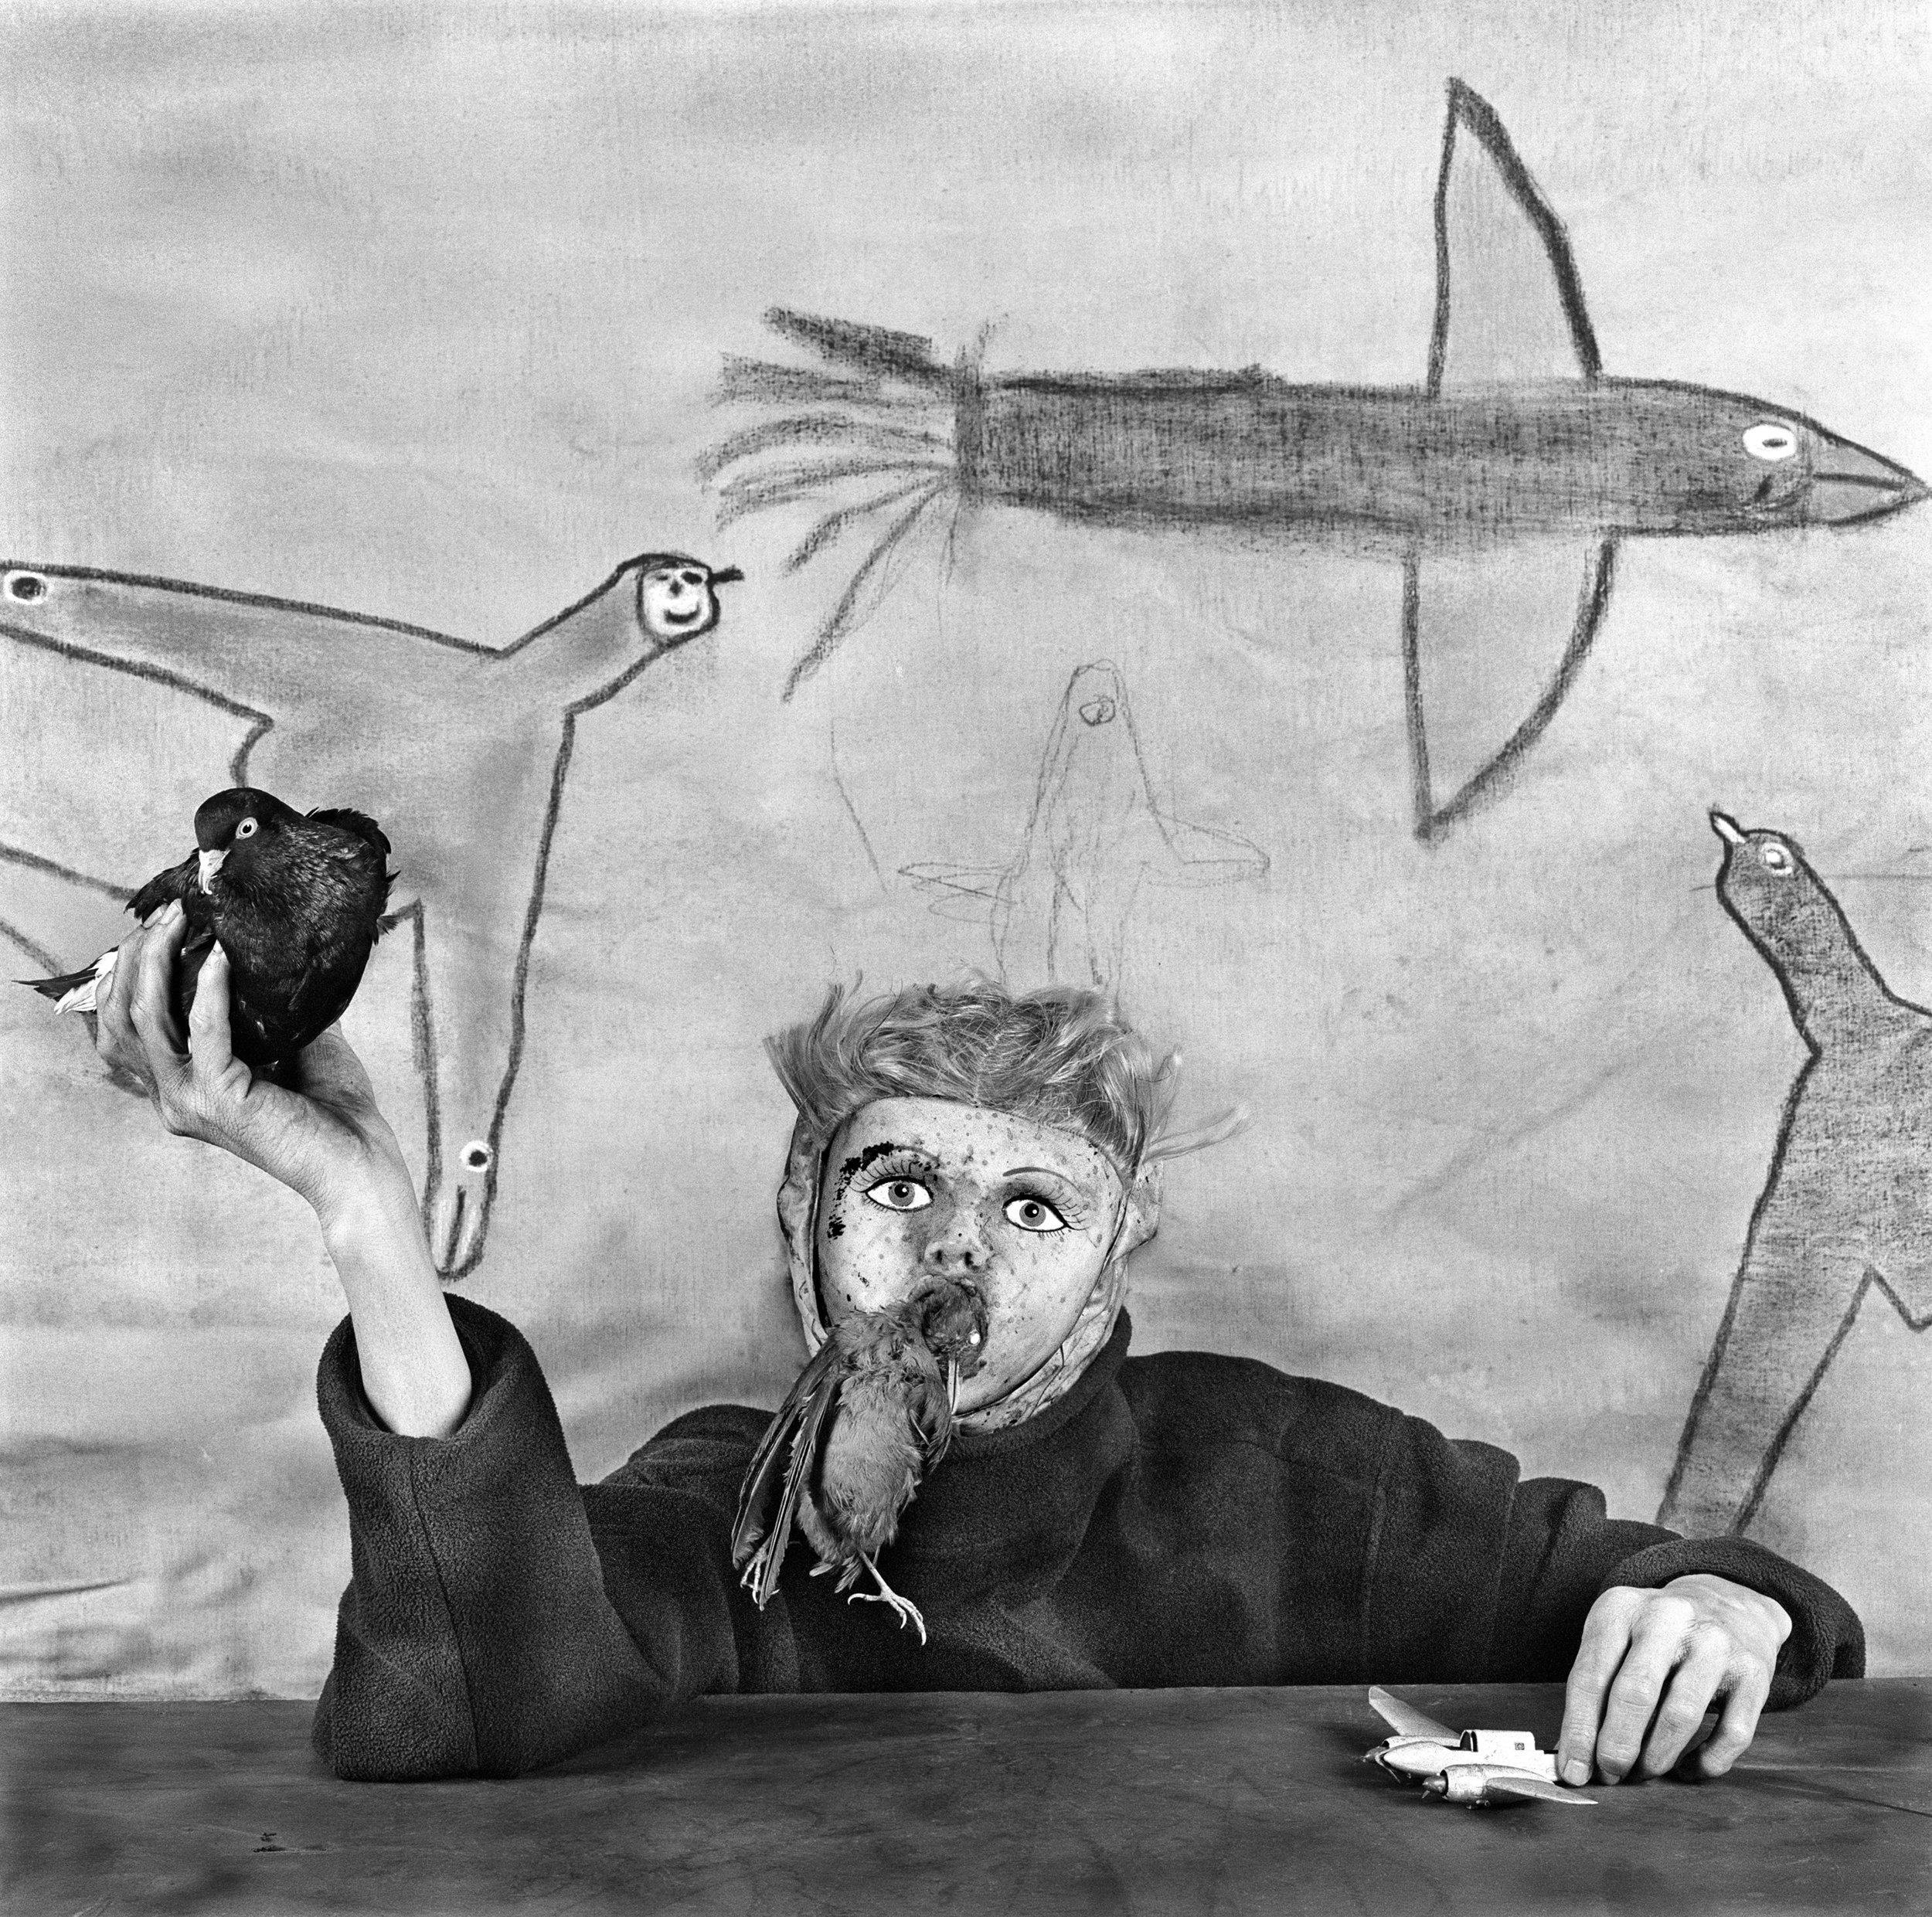 TAKE OFF (2012). CREDIT: ROGER BALLEN